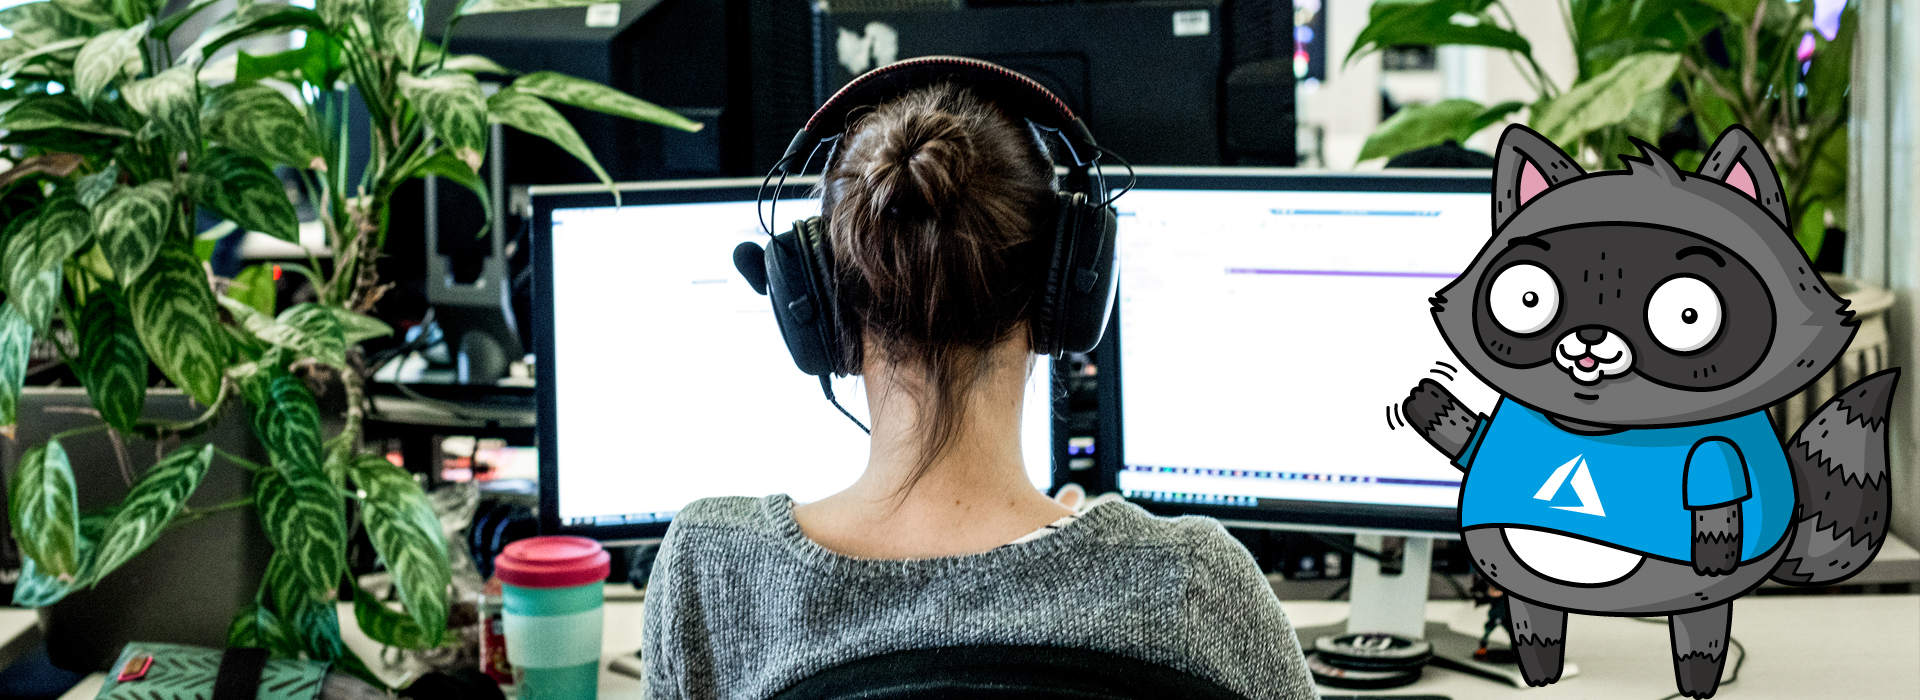 A woman sitting at a desk, working on a code project across two monitors. A picture of Bit the Raccoon is on the right of the image.